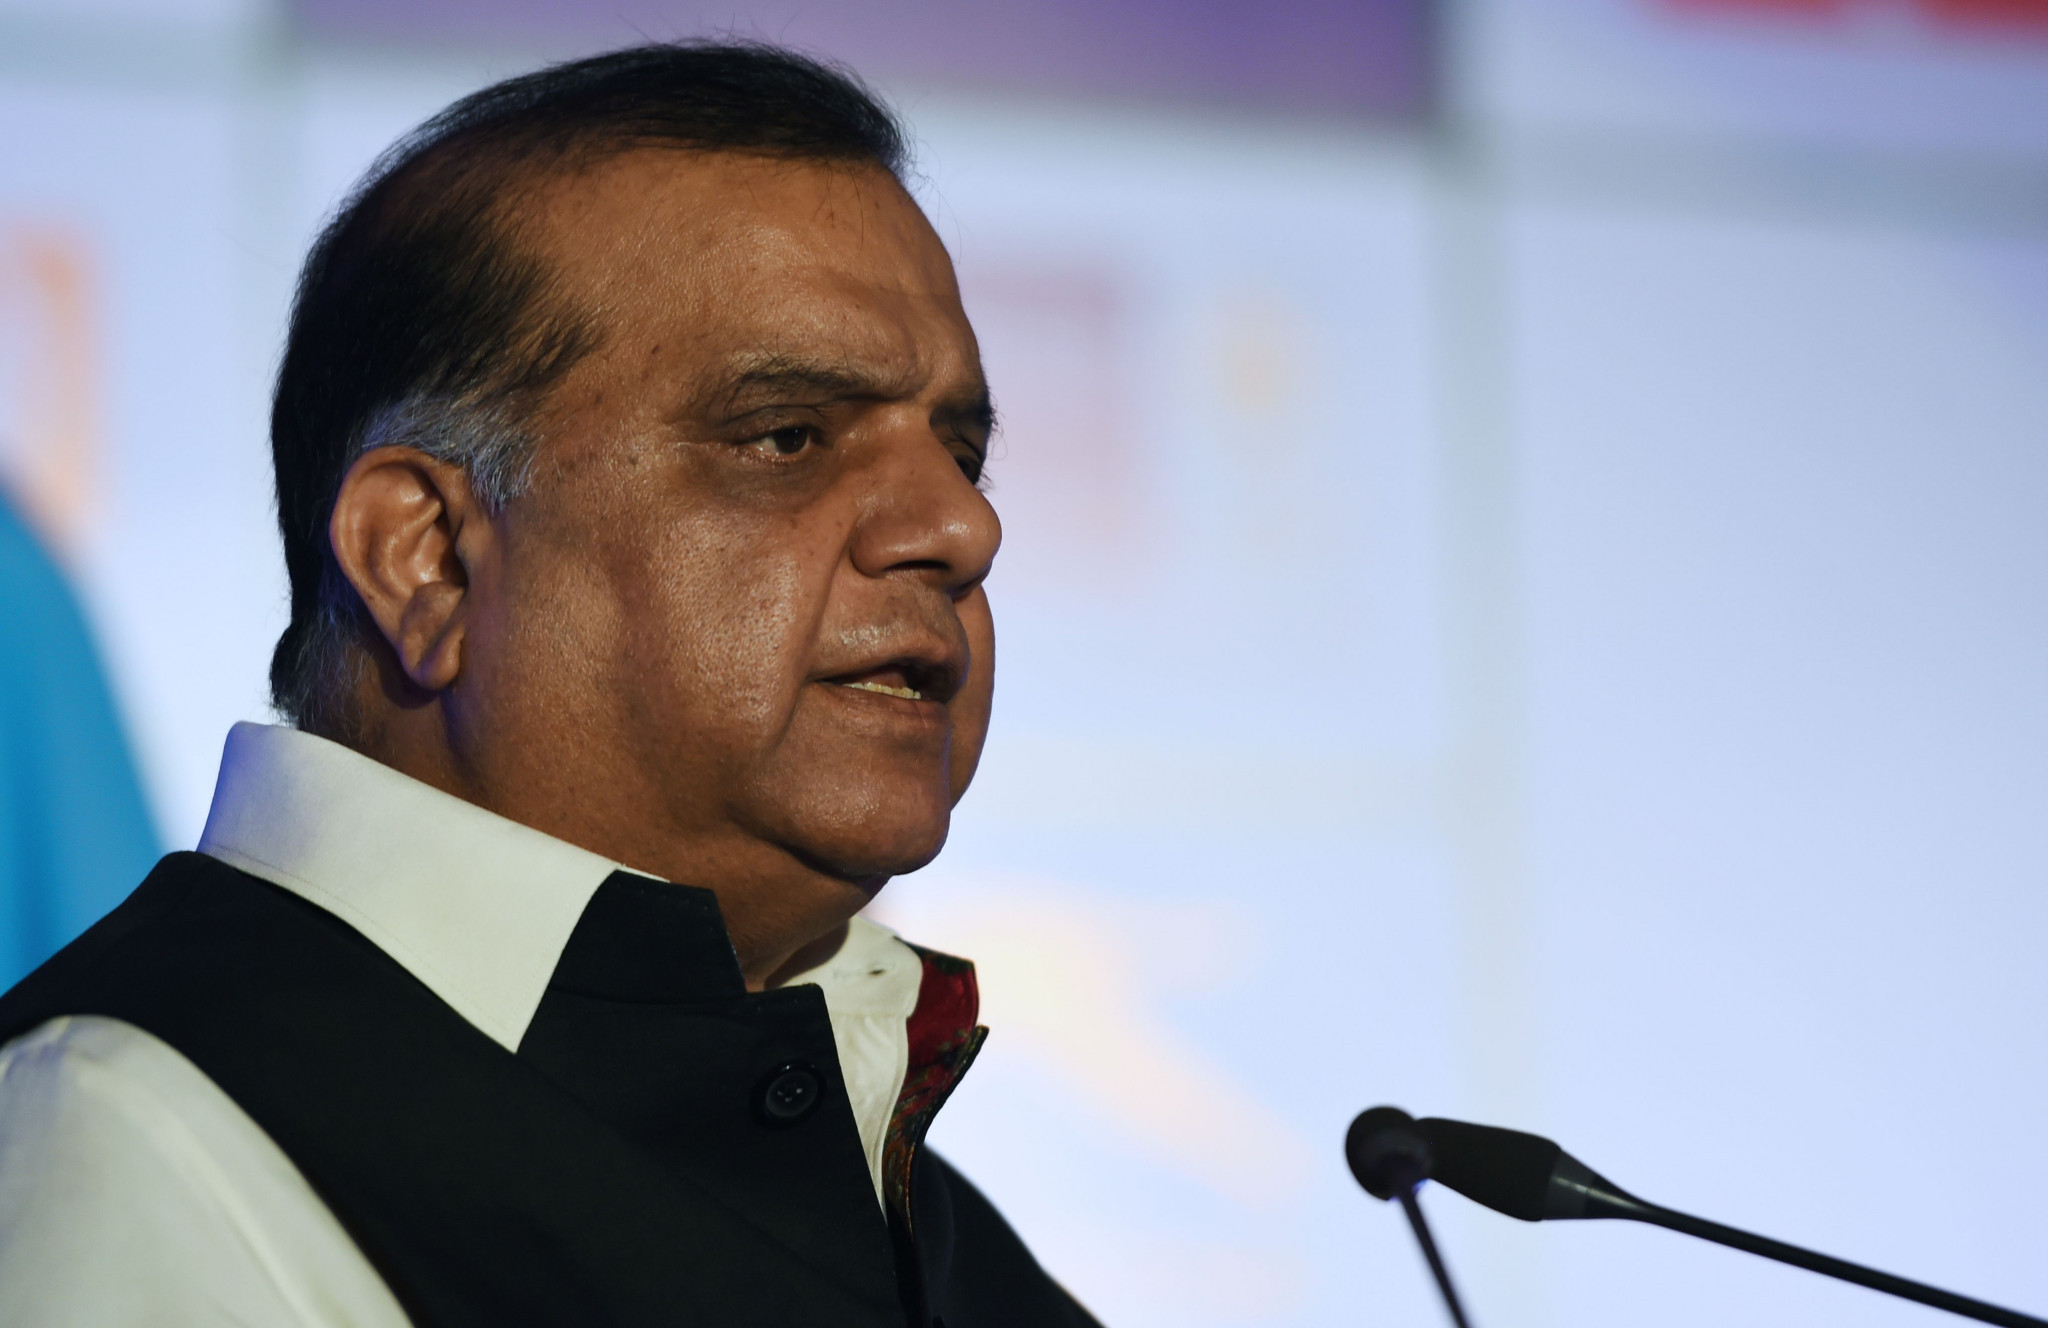 IOA President Narinder Batra has vowed to stick by Lalit Bhanot ©Getty Images